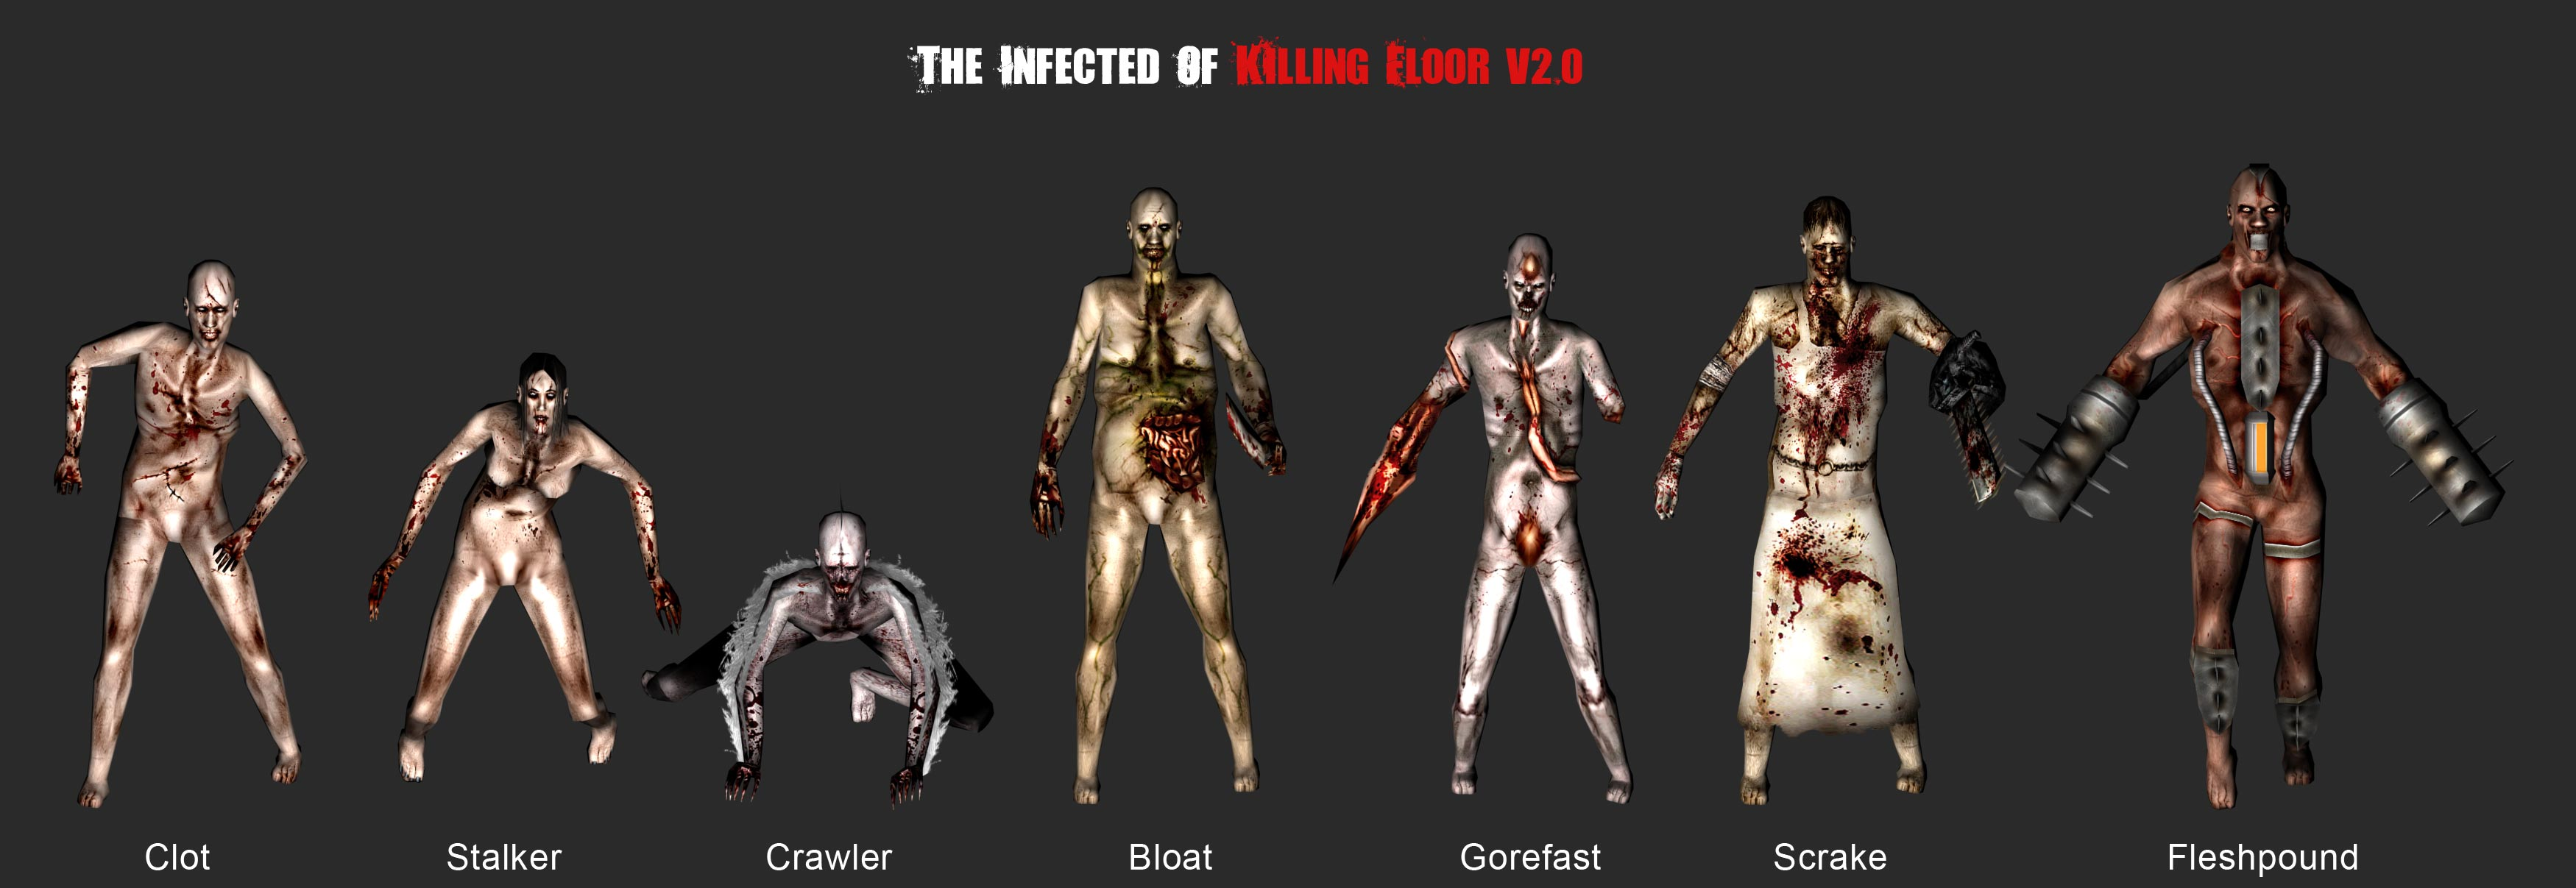 the re made infected for kfv2 0 image killing floor mod